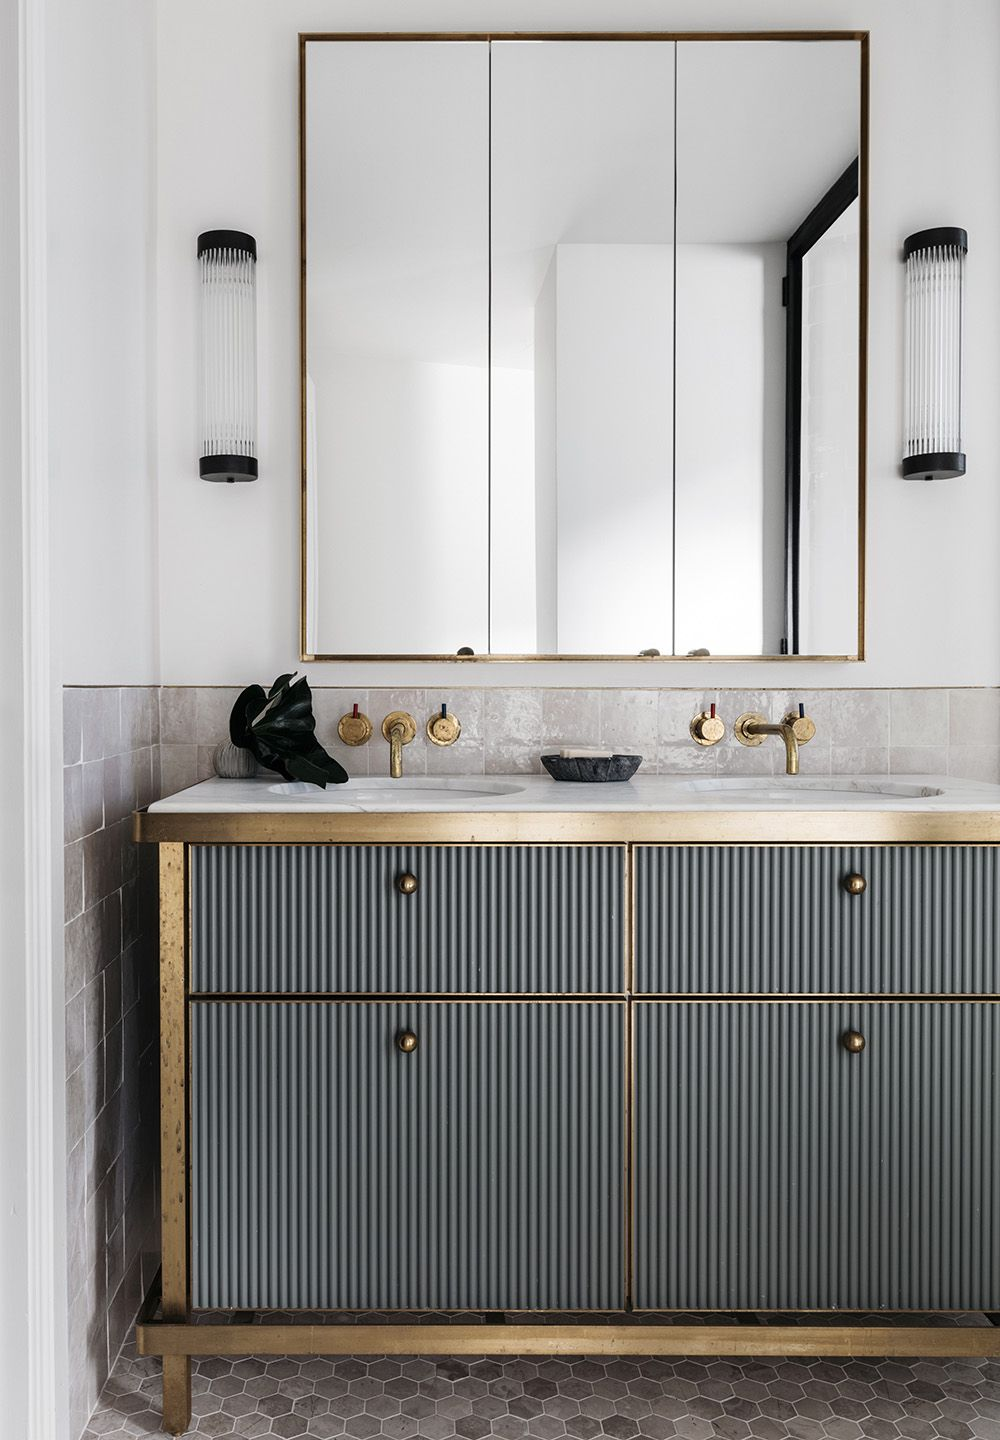 Brass-Framed Vanity | Harbourside Apartment | Designer: Arent & Pyke ...